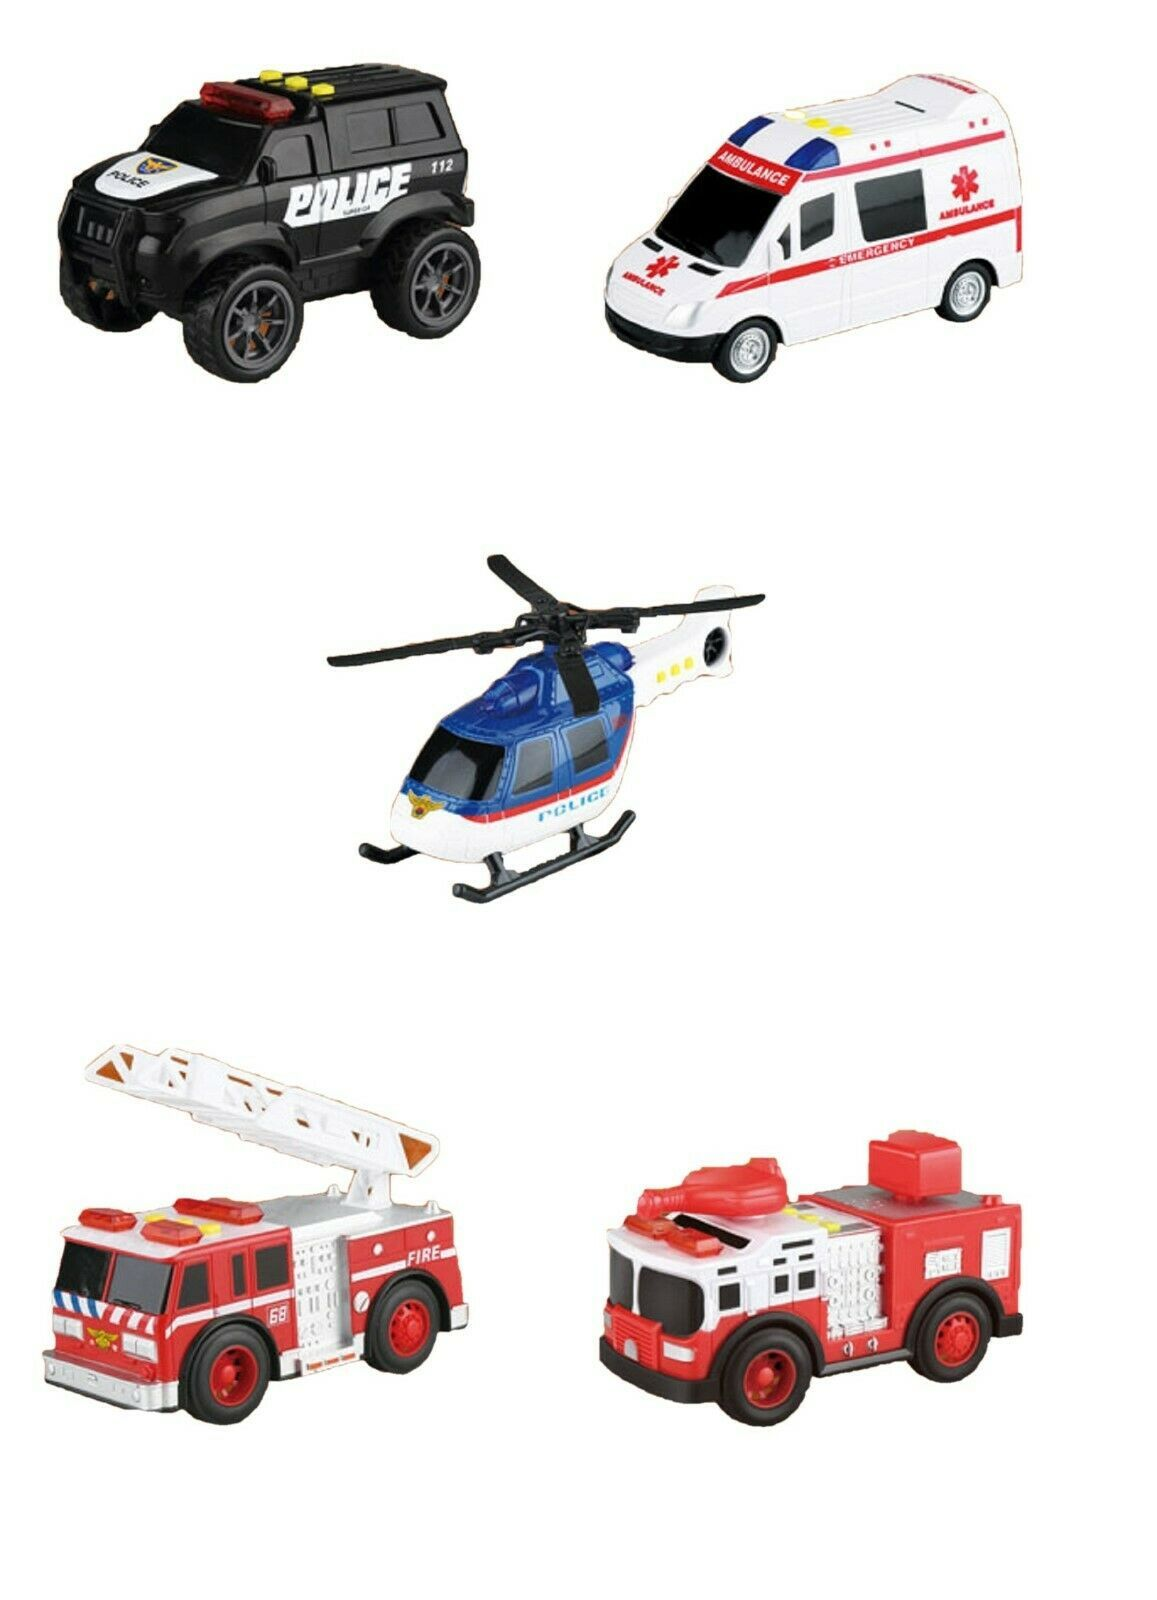 Think Toys City Emergency Rescue Manual Pull Back Special Car Vehicle Toy Set